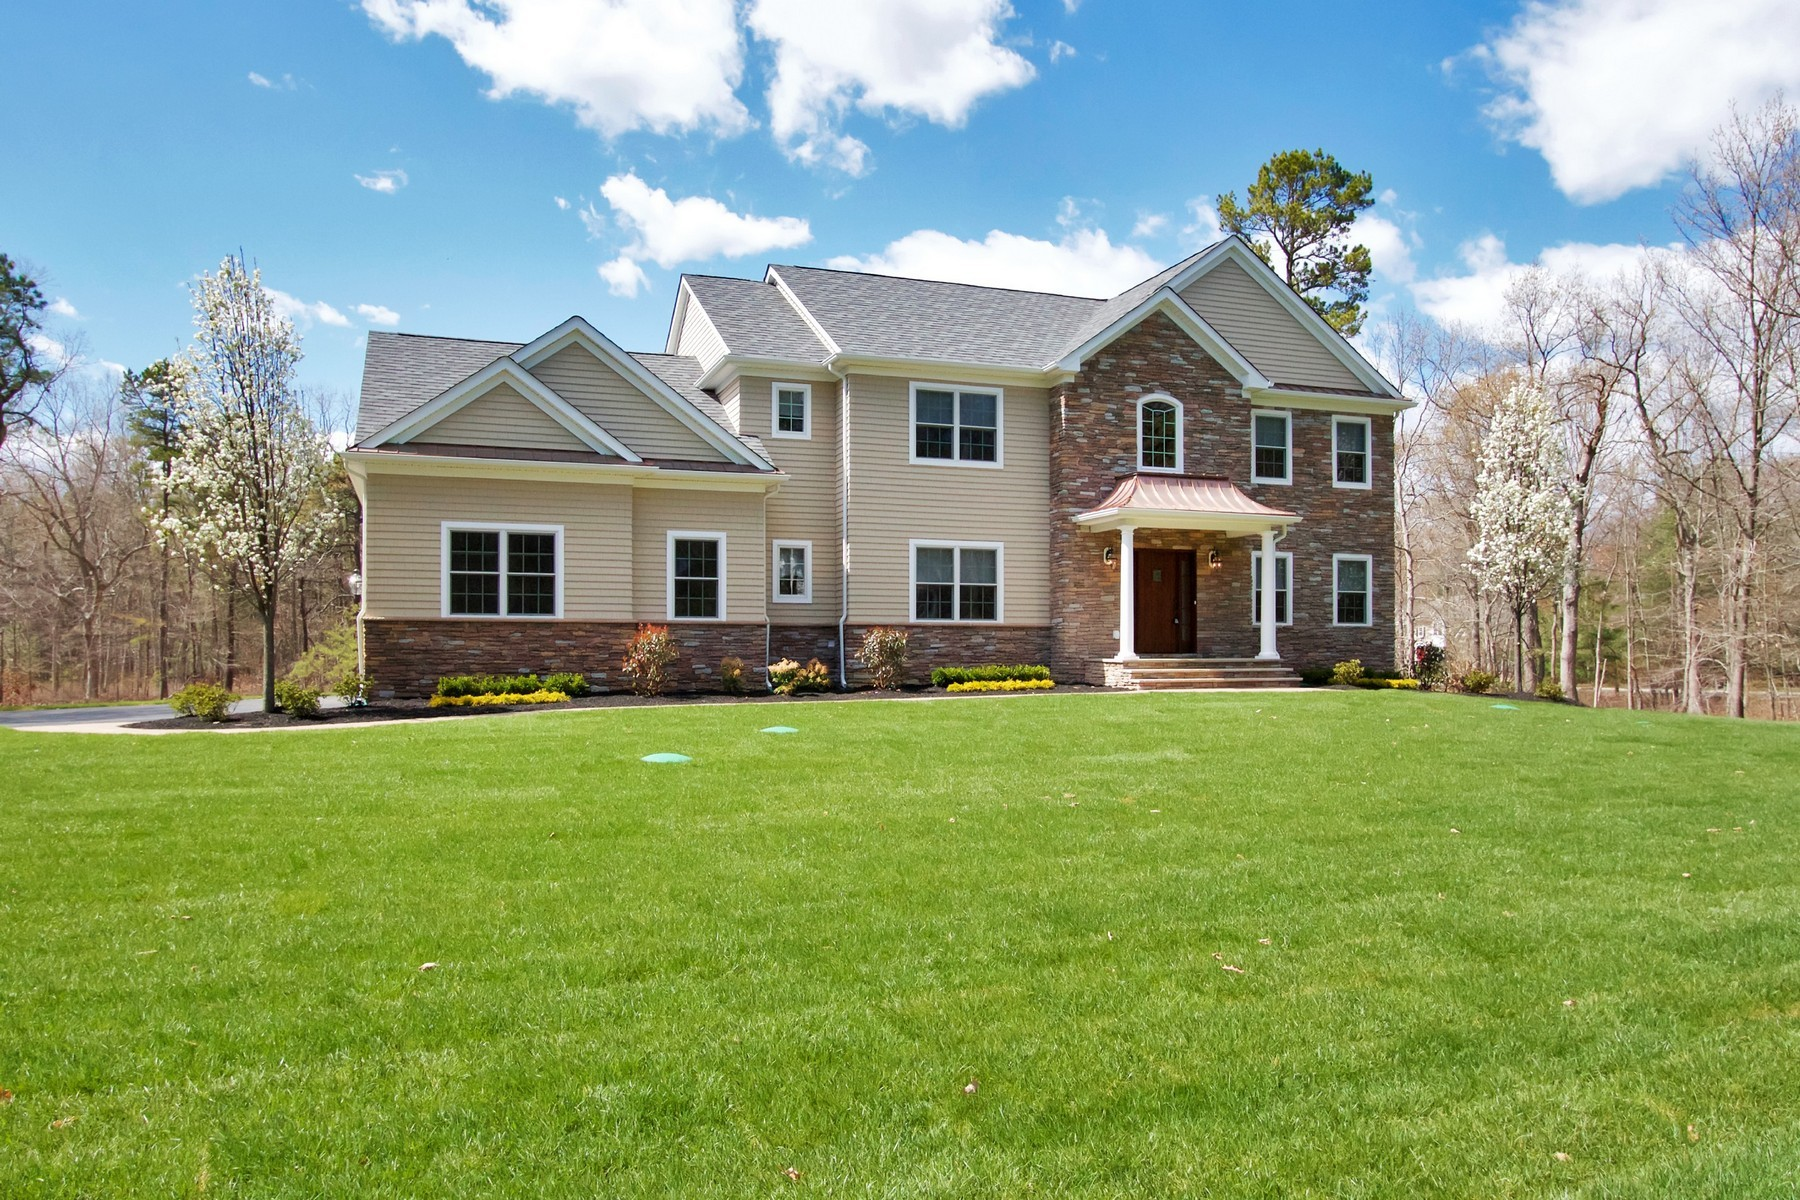 Single Family Home for Rent at Custom Home in Colts Neck 3 Iroquois Court, Colts Neck, New Jersey 07722 United States